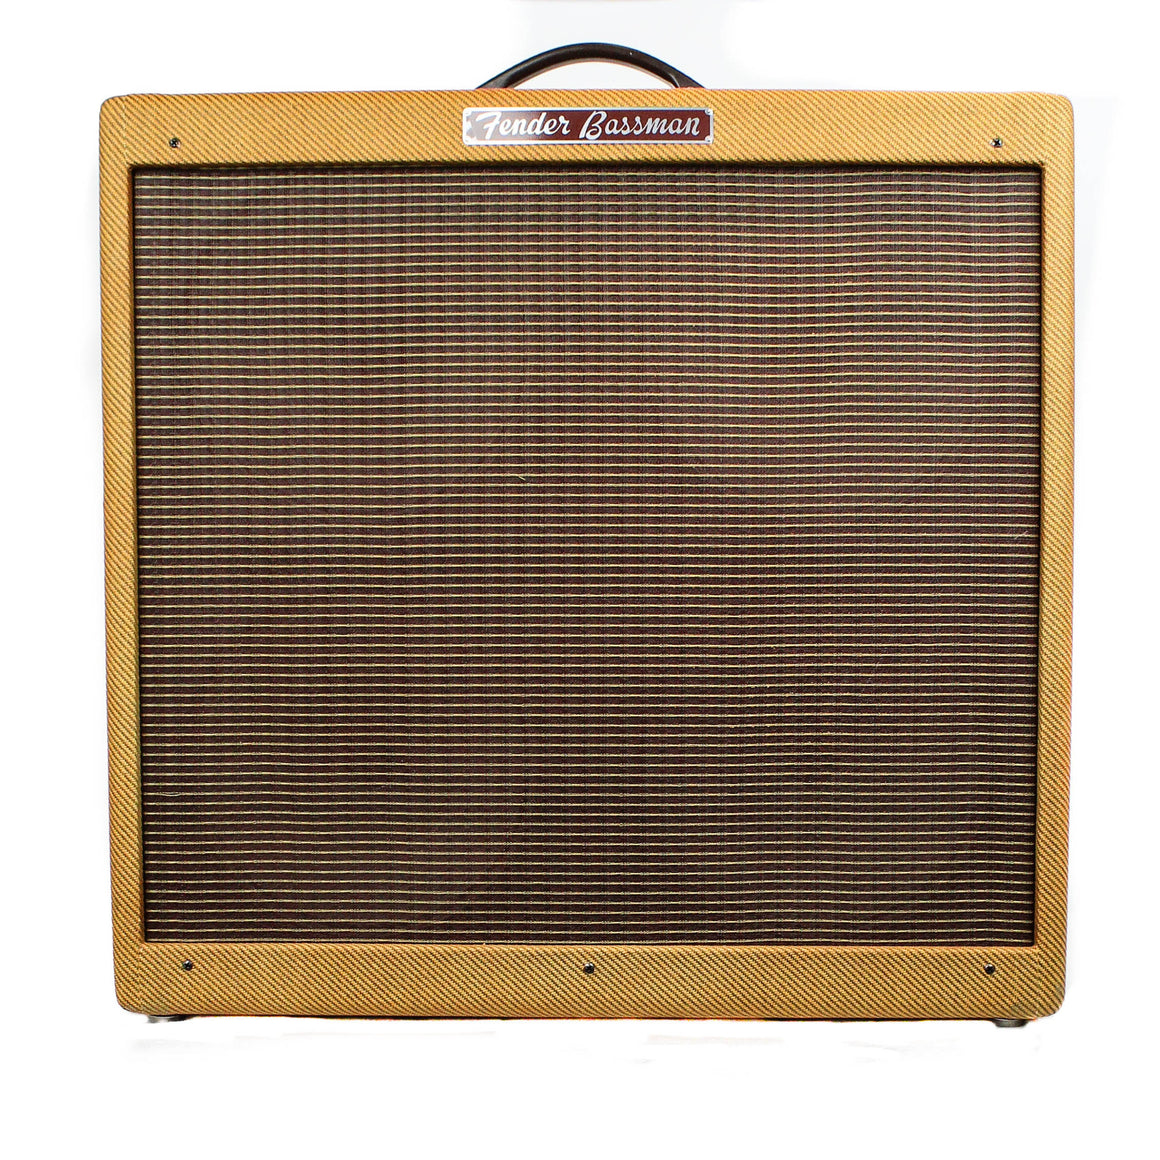 Fender 59 Bassman LTD Electric Guitar Amplifier - Guitar Galleries